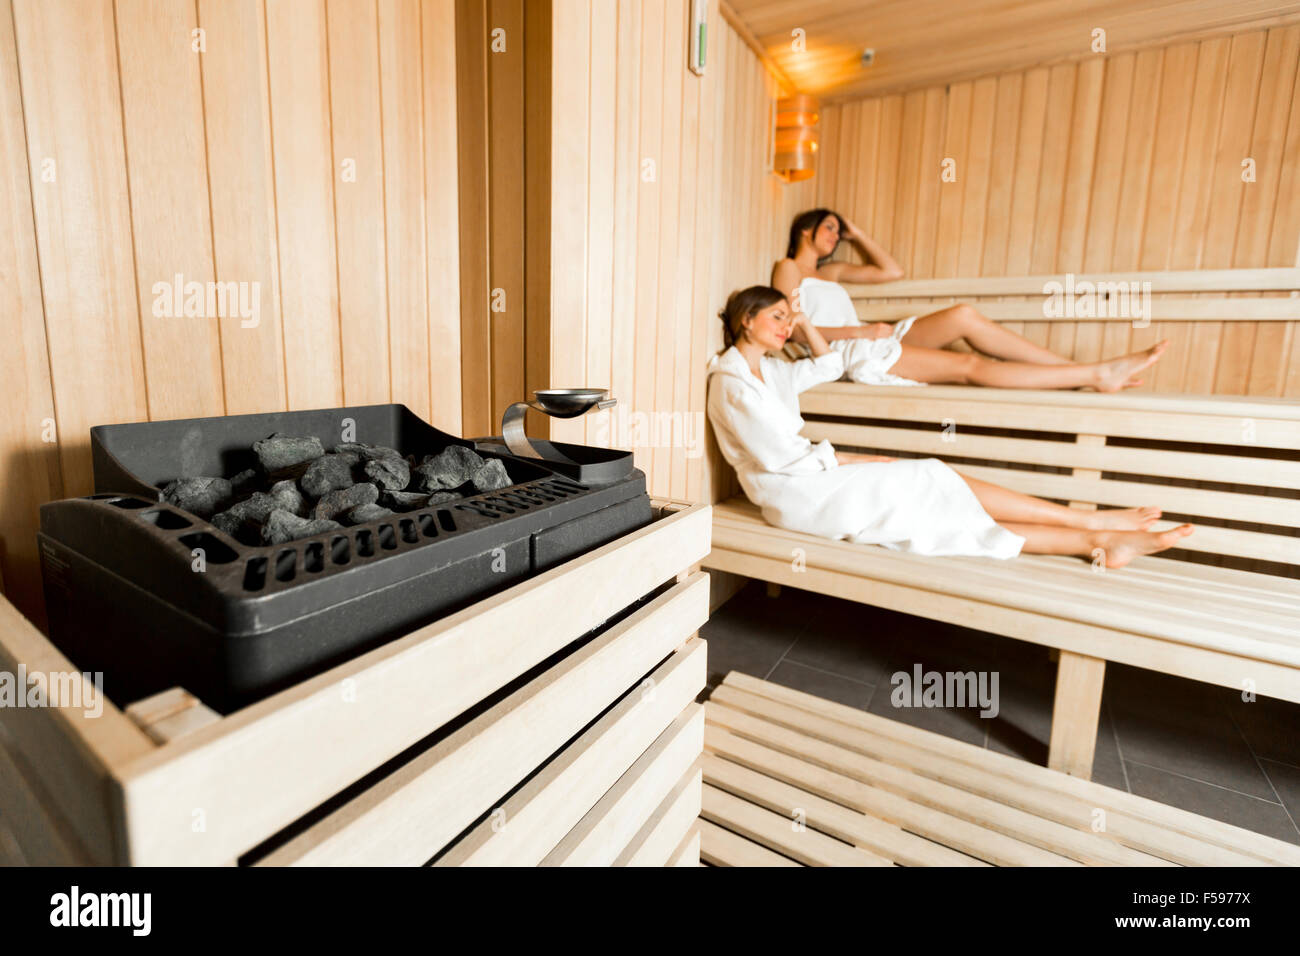 Sauna heater in a cozy sauna and girls relaxing in the background - Stock Image